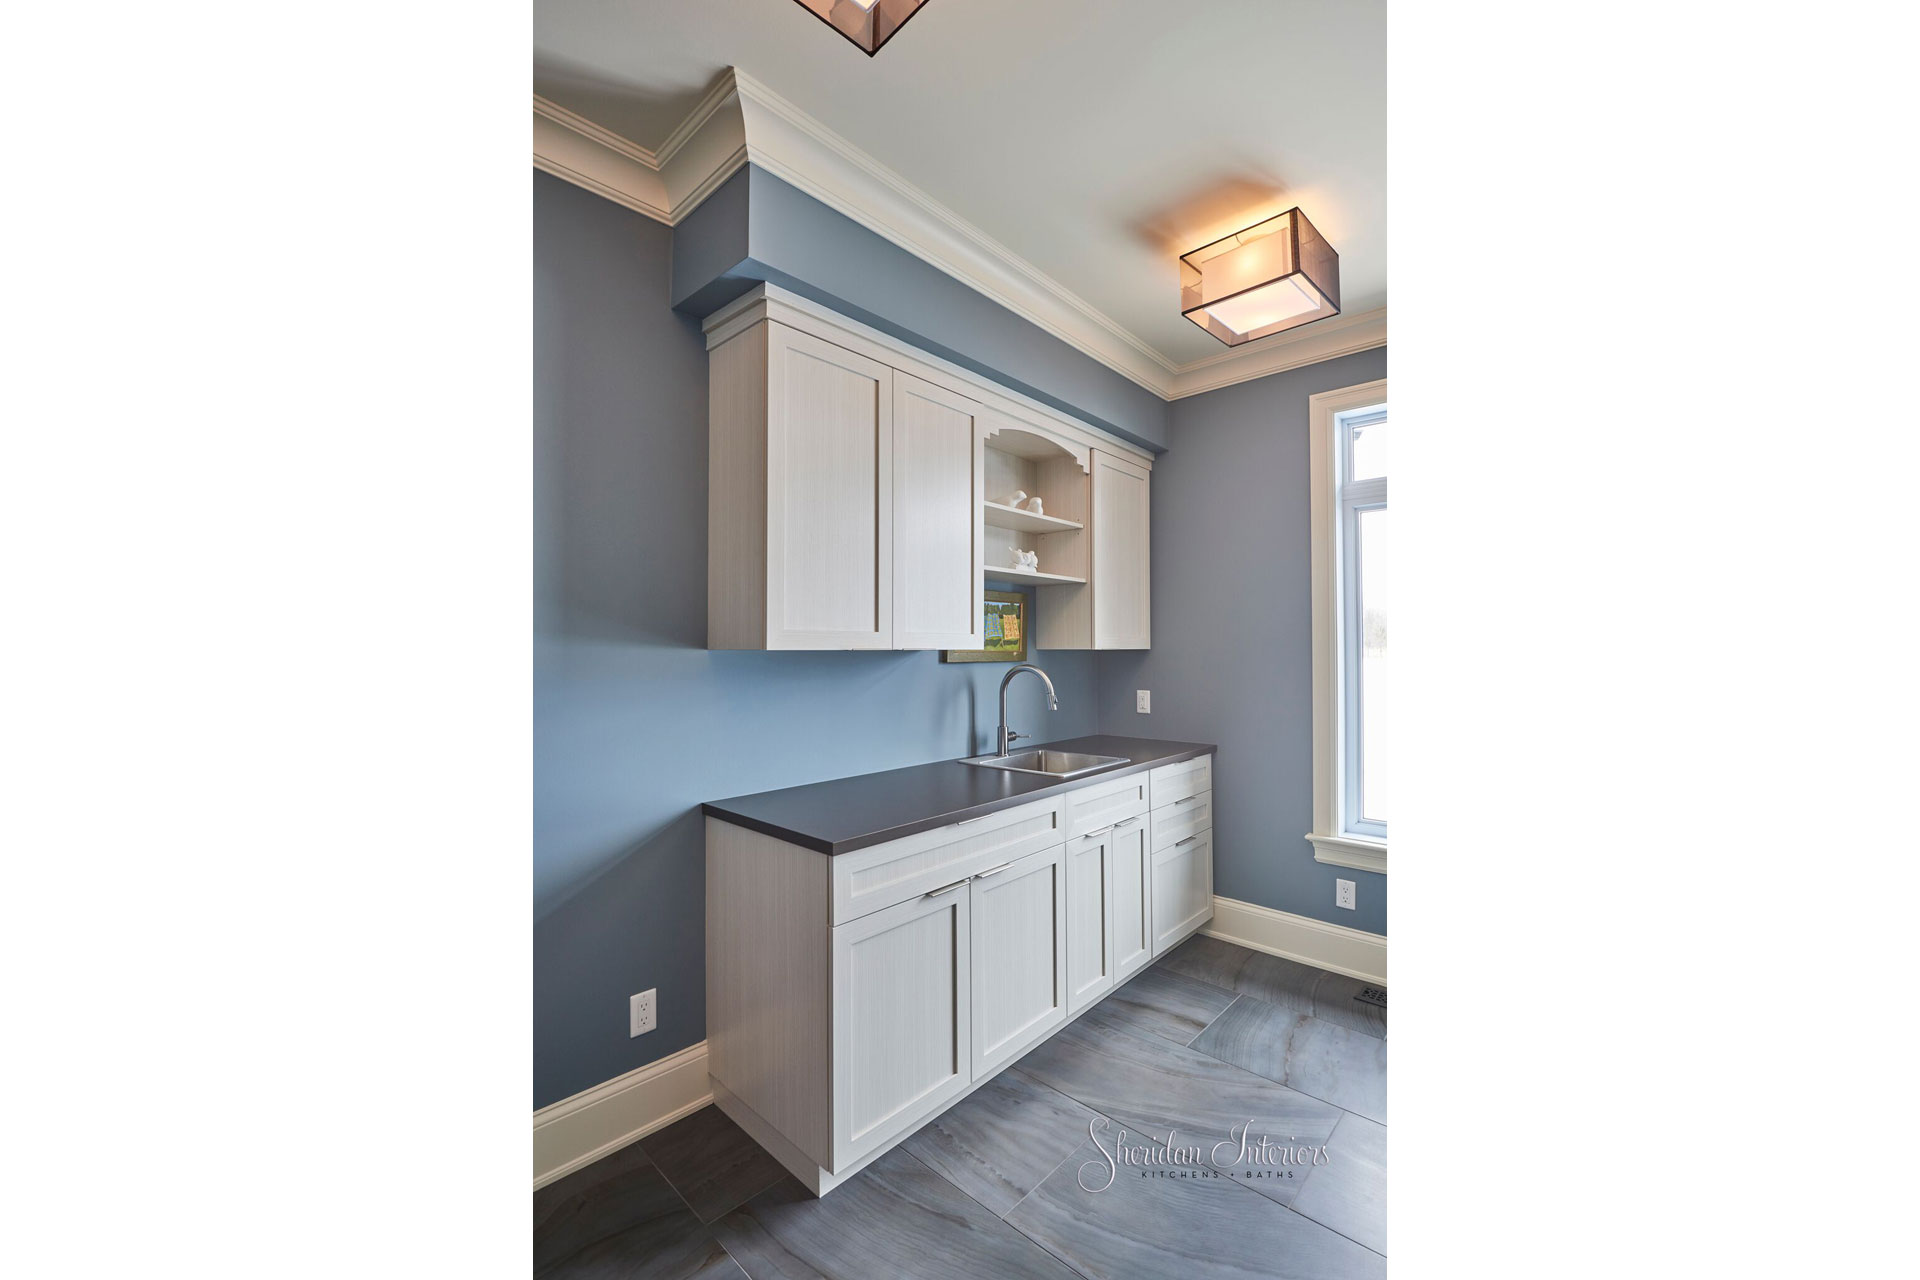 Modern Laundry Room - Sheridan Interiors